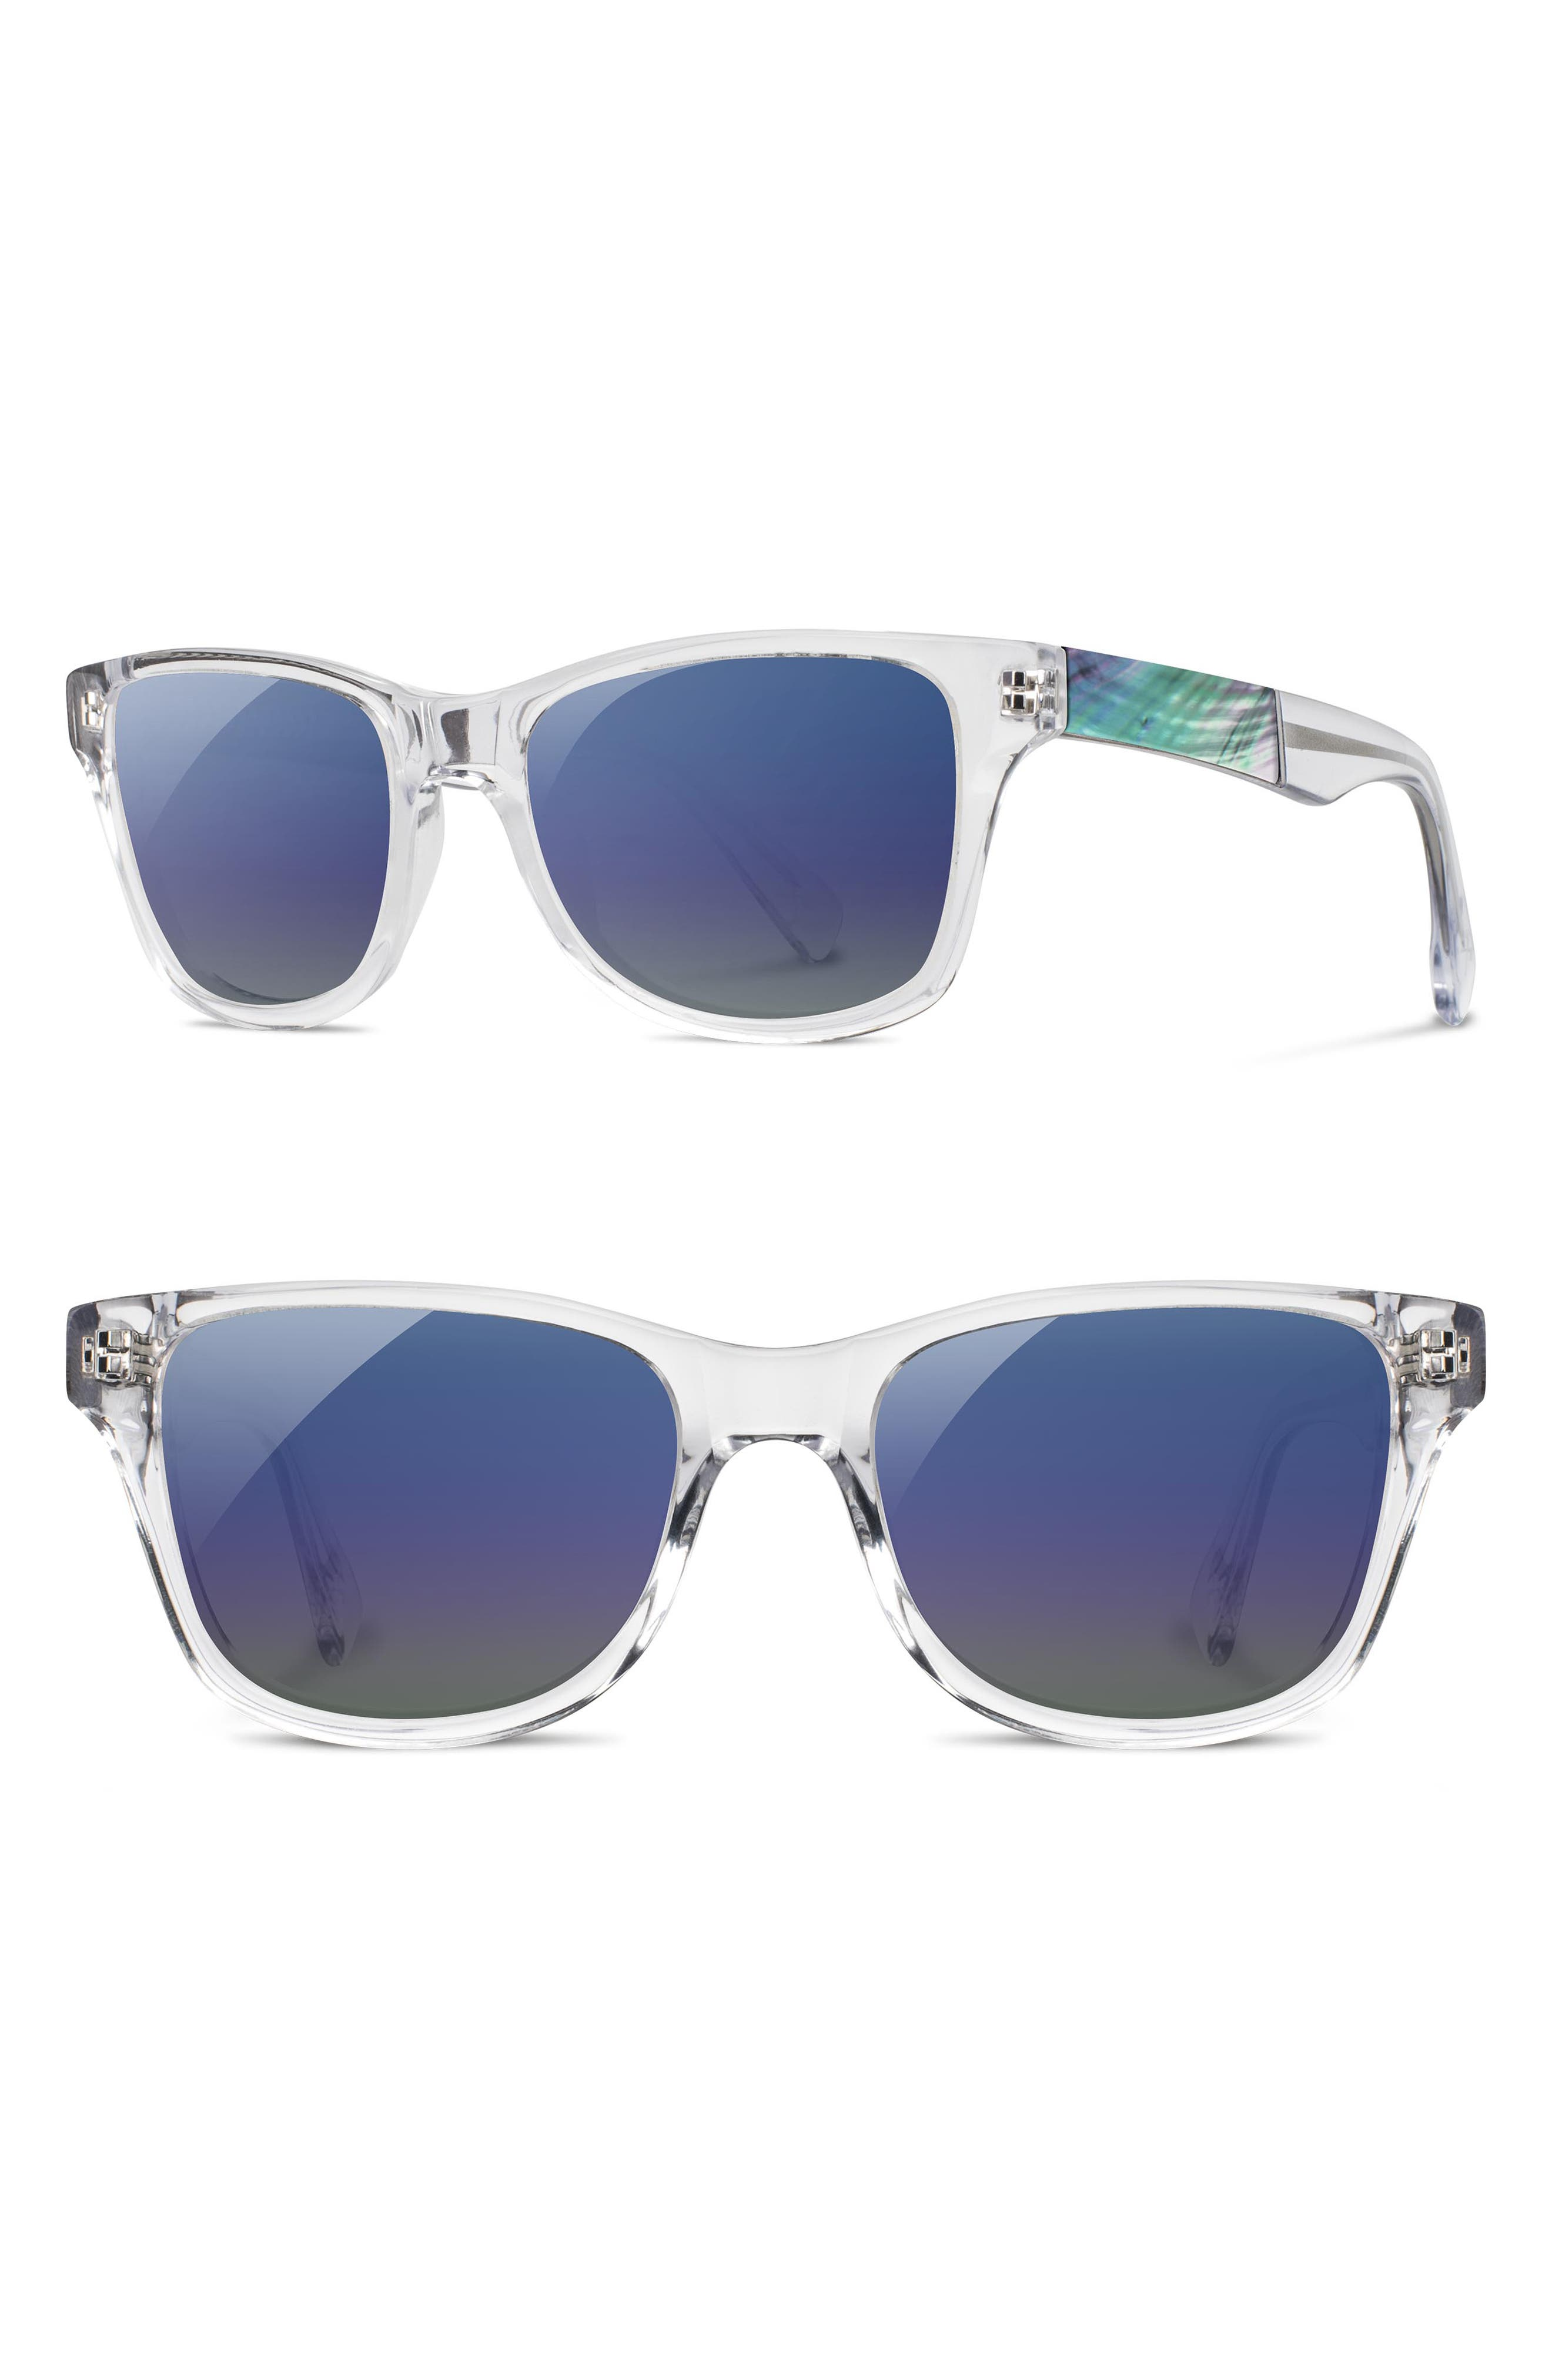 Polarized Wood Inlay Sunglasses,                             Main thumbnail 1, color,                             CRYSTAL/ ABALONE SHELL/ BLUE